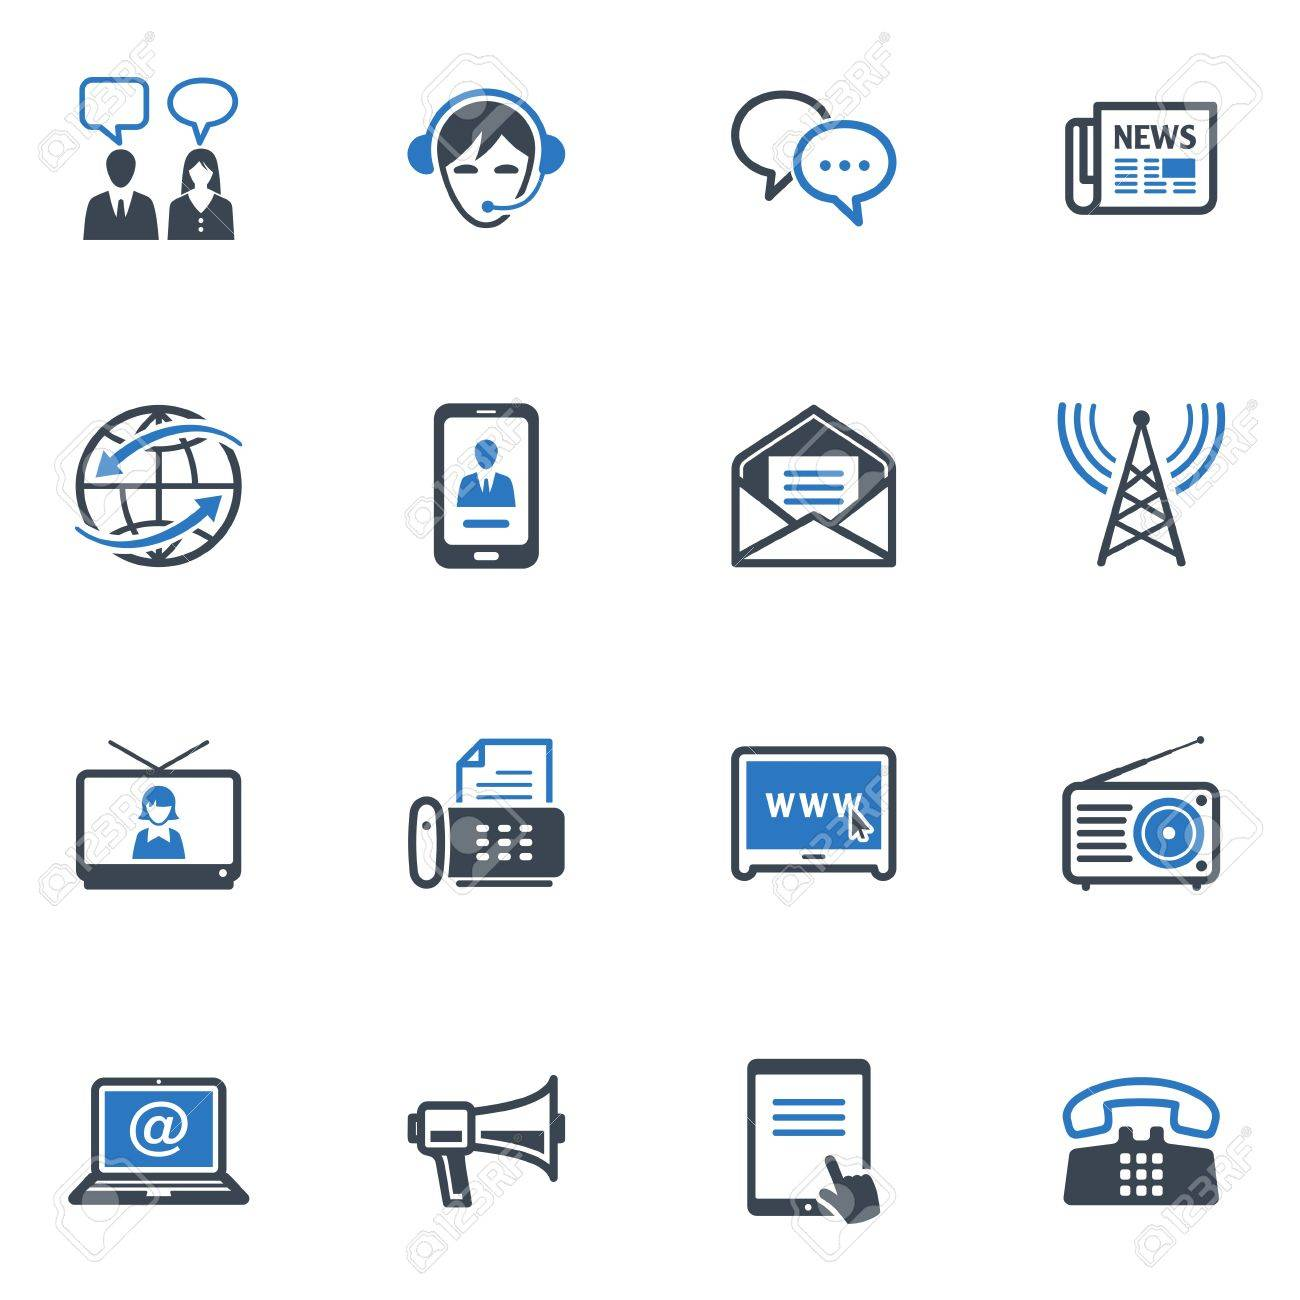 Communication Icons Set 2 - Blue Series Stock Vector - 18025137